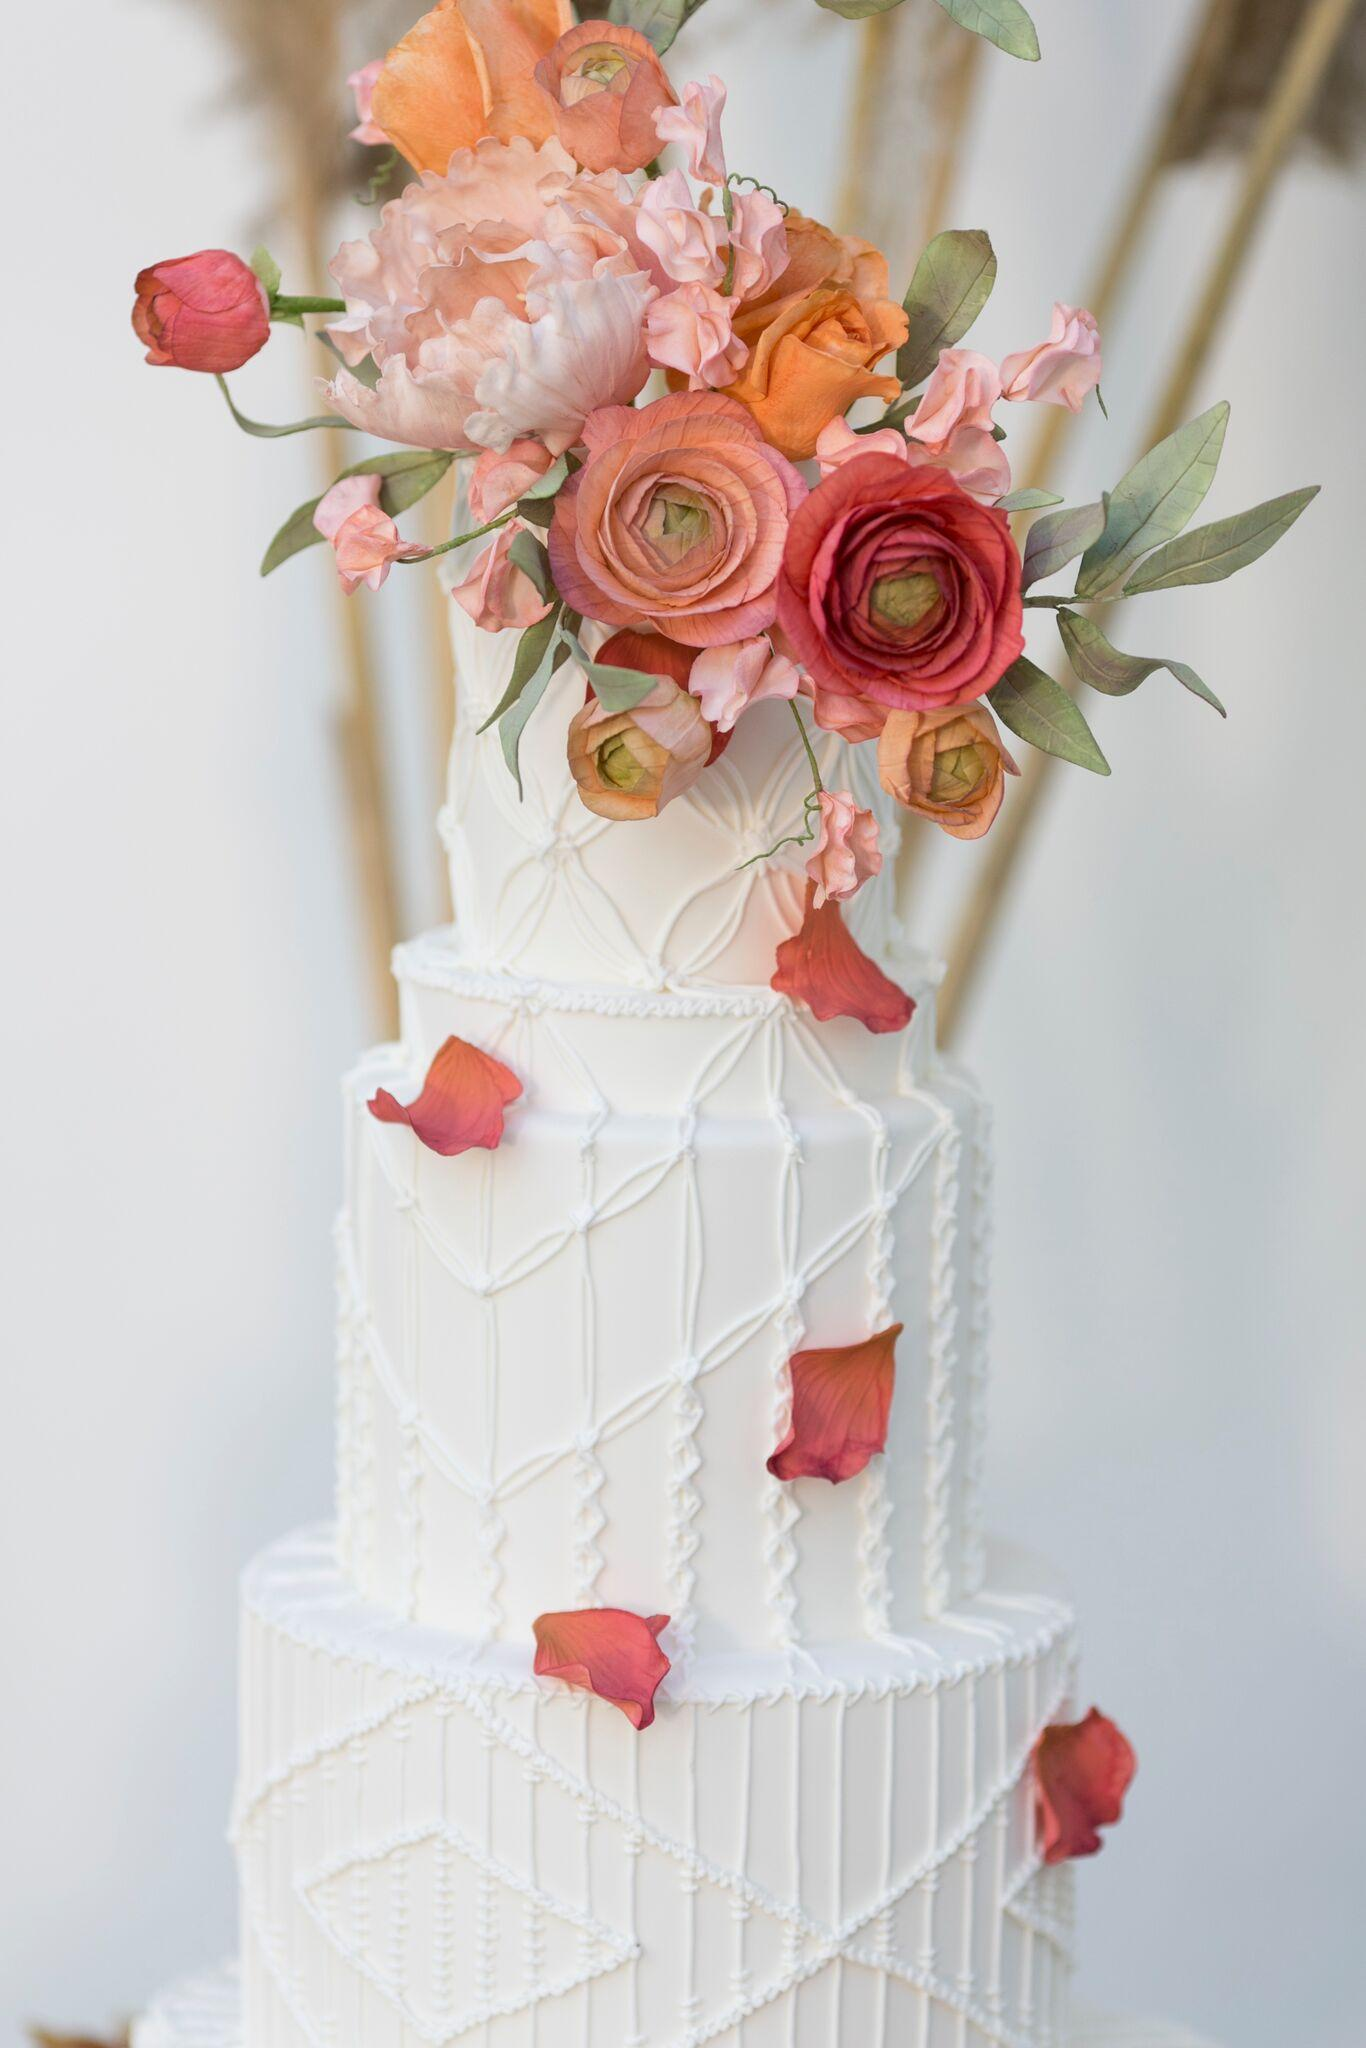 White Wedding with Bright Colored Sugar Flowers